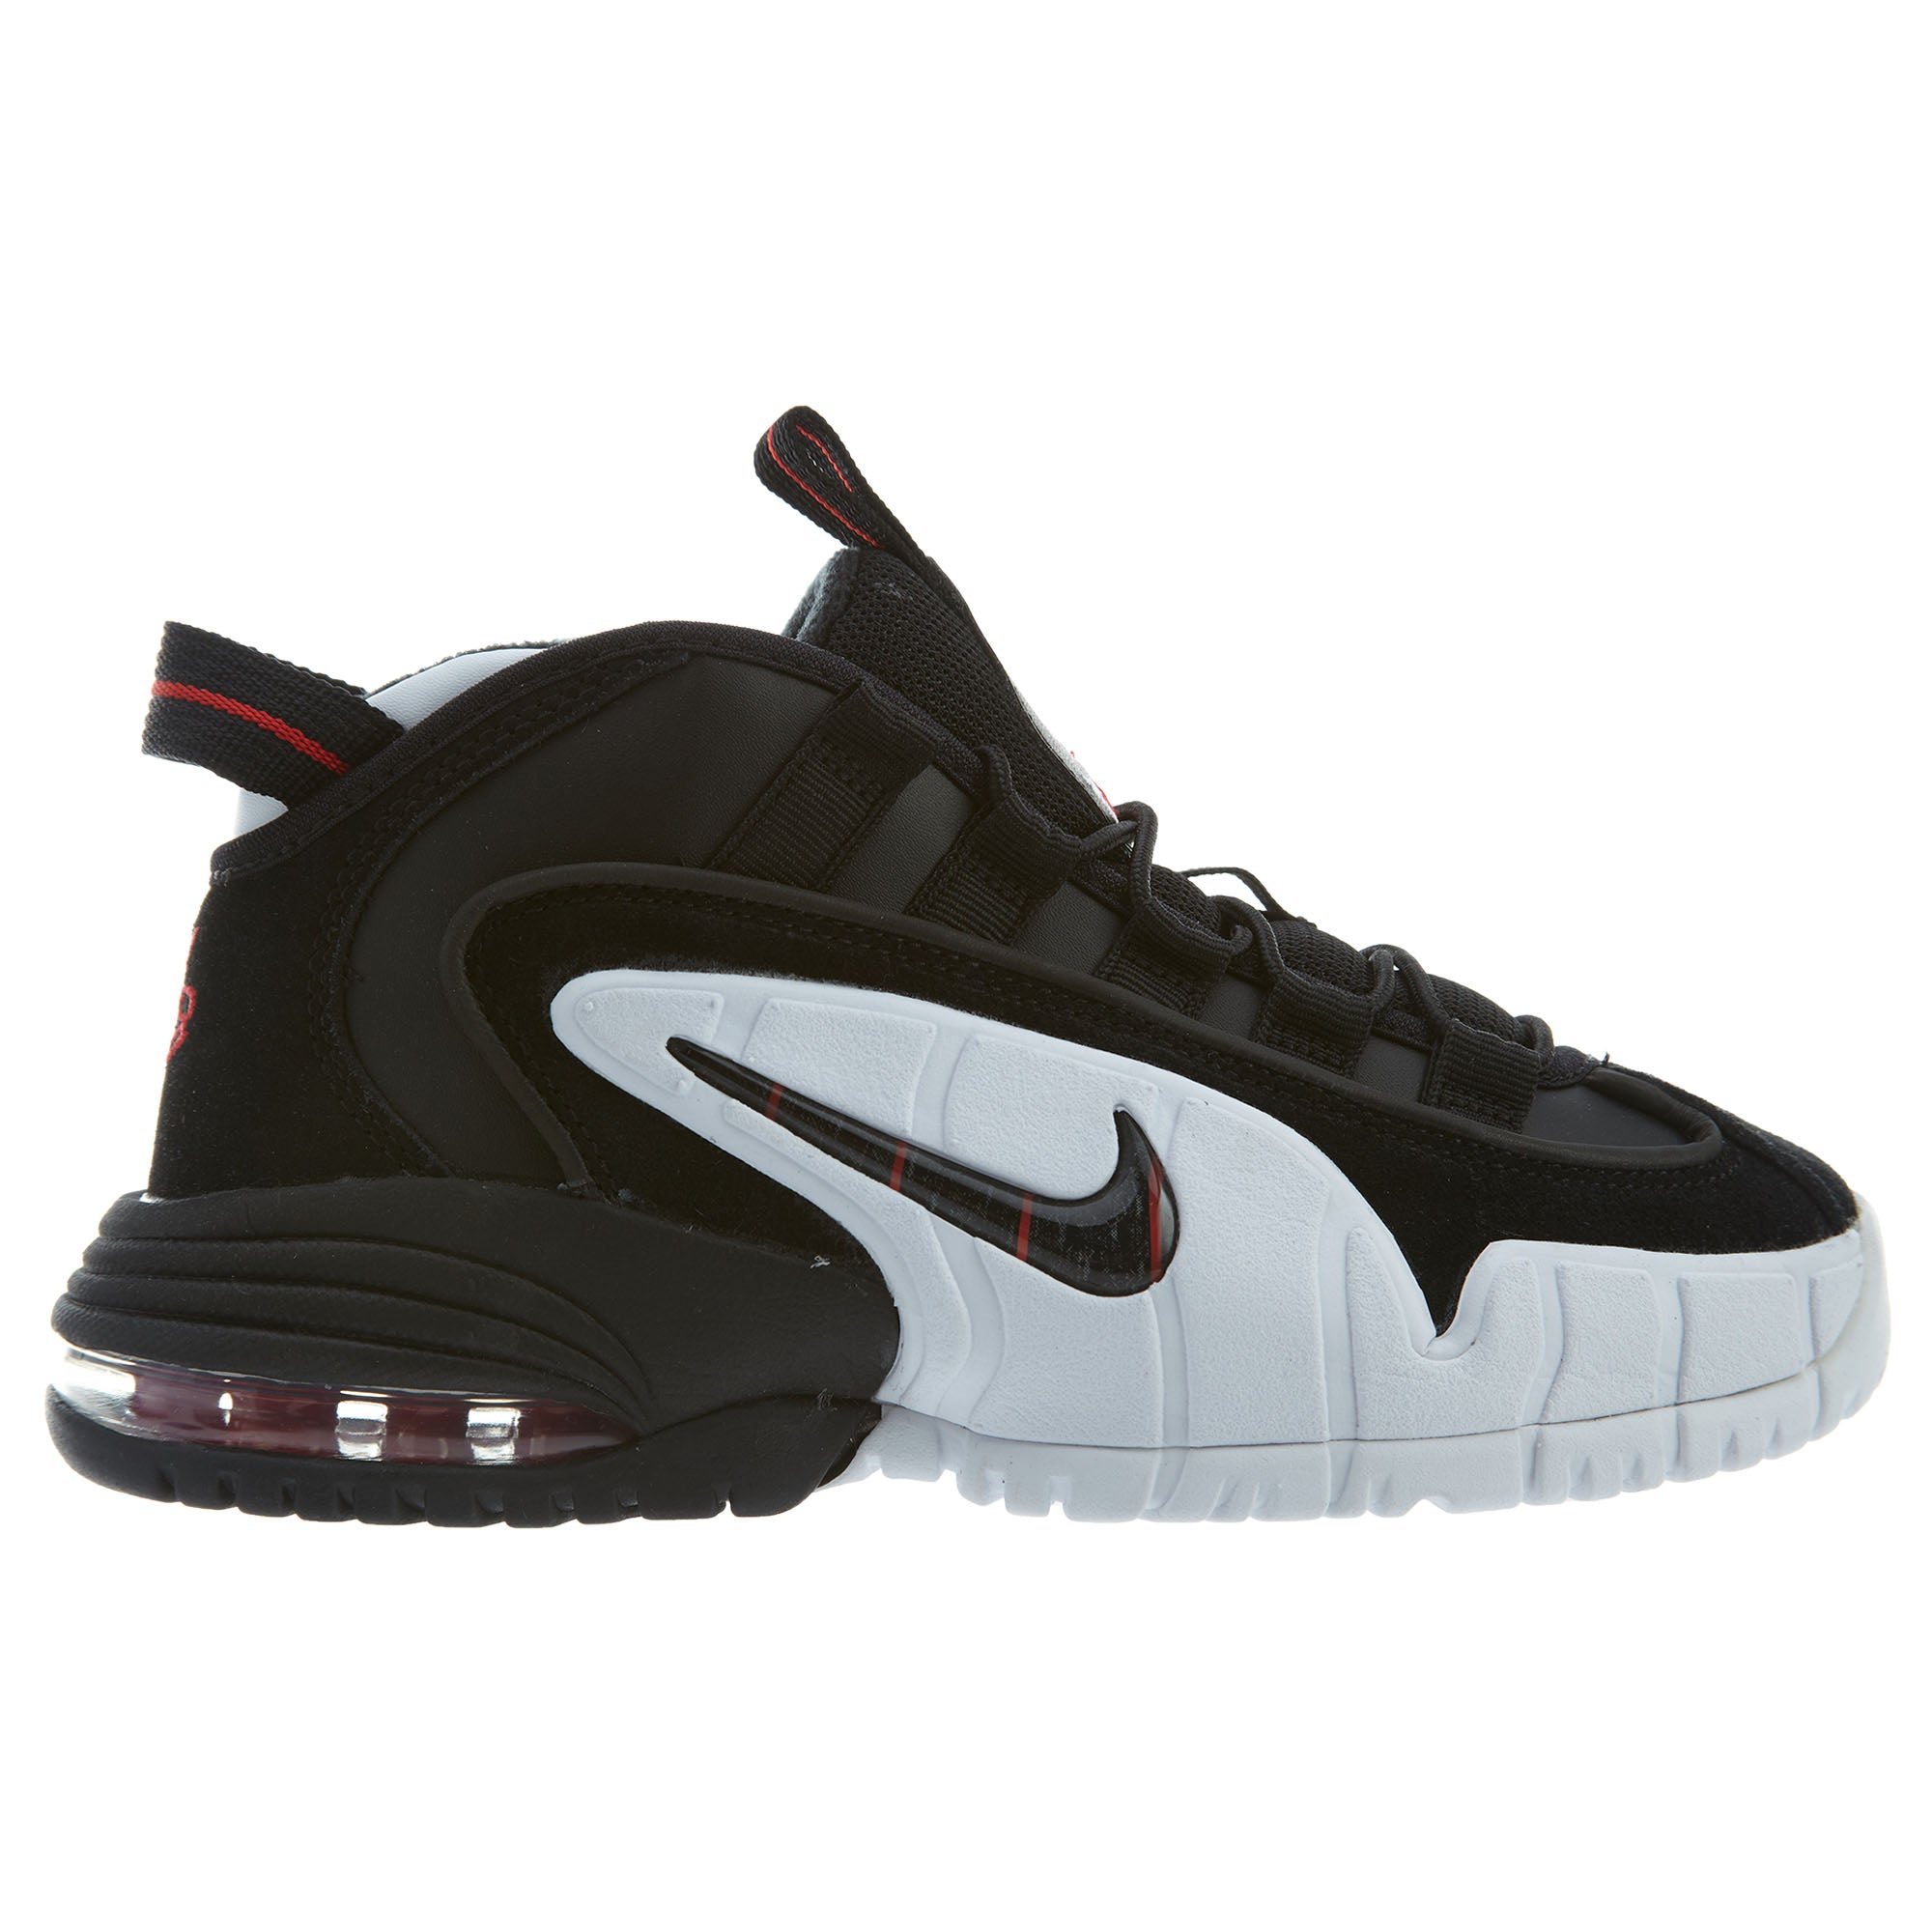 Nike Air Max Penny Le Big Kids 315519 007 – Sneaker Experts